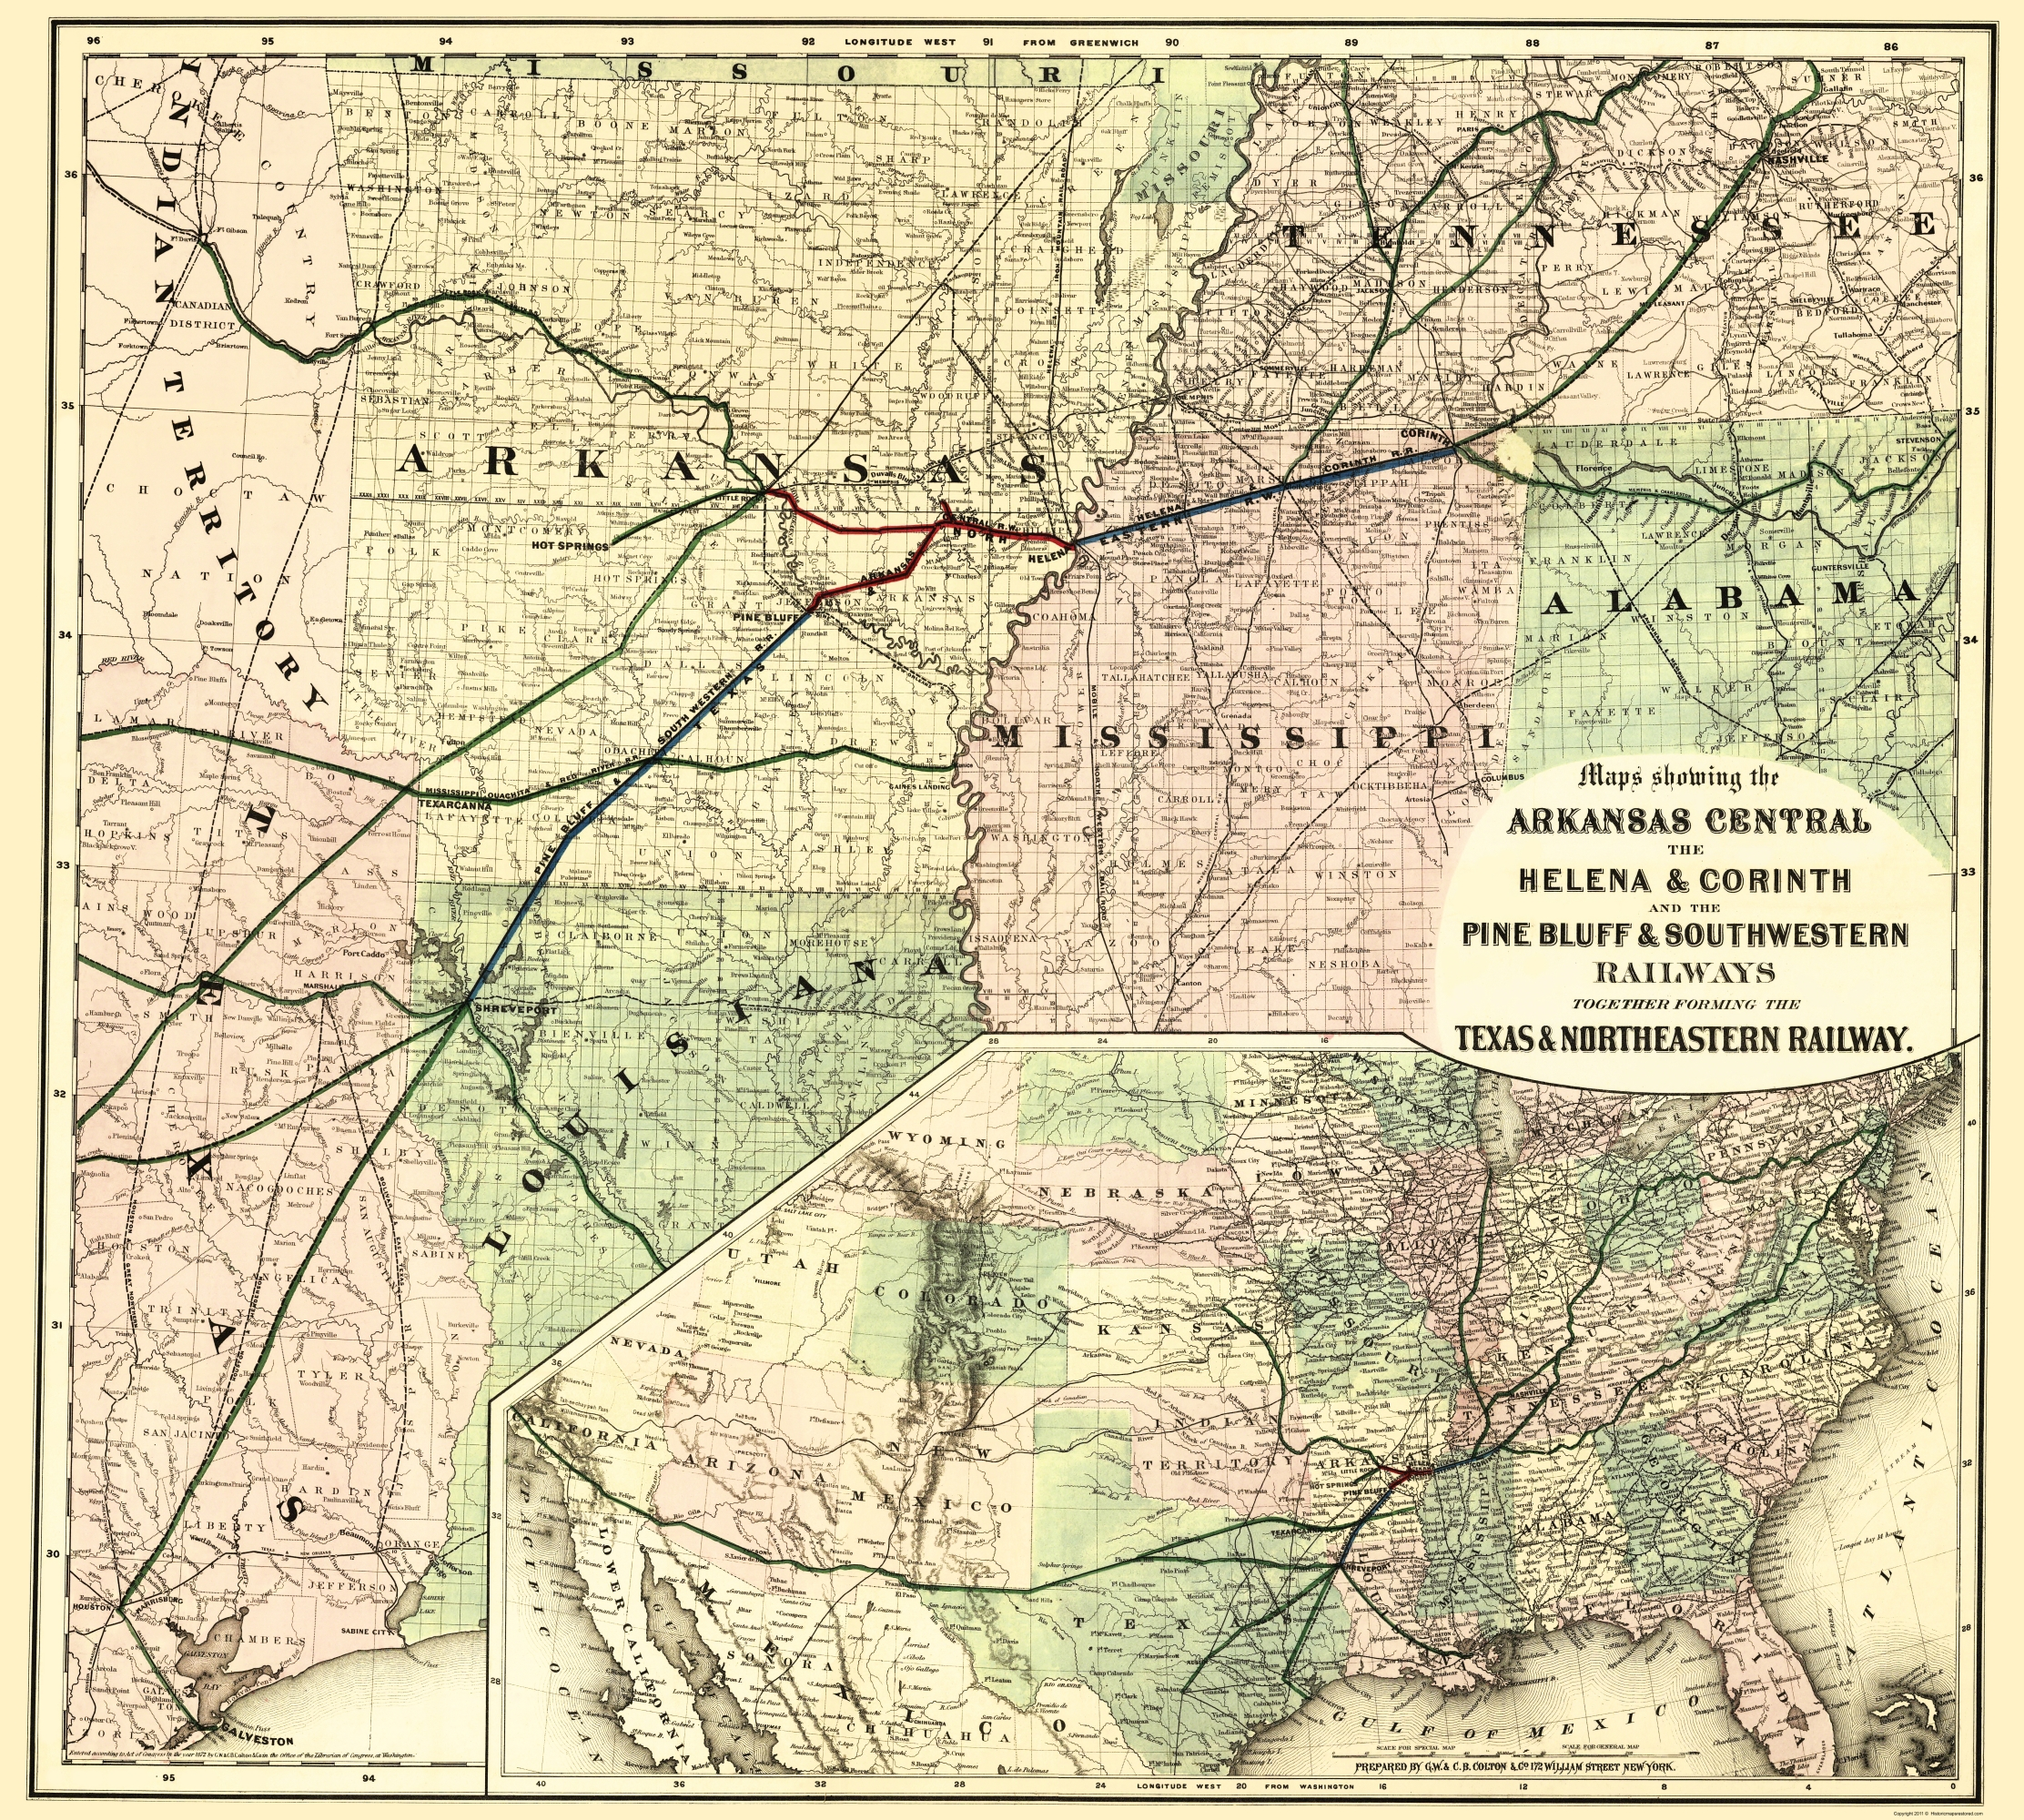 Railroad Map Of Texas.Old Railroad Map Texas And Northeastern Railway Colton 1872 23 X 25 58